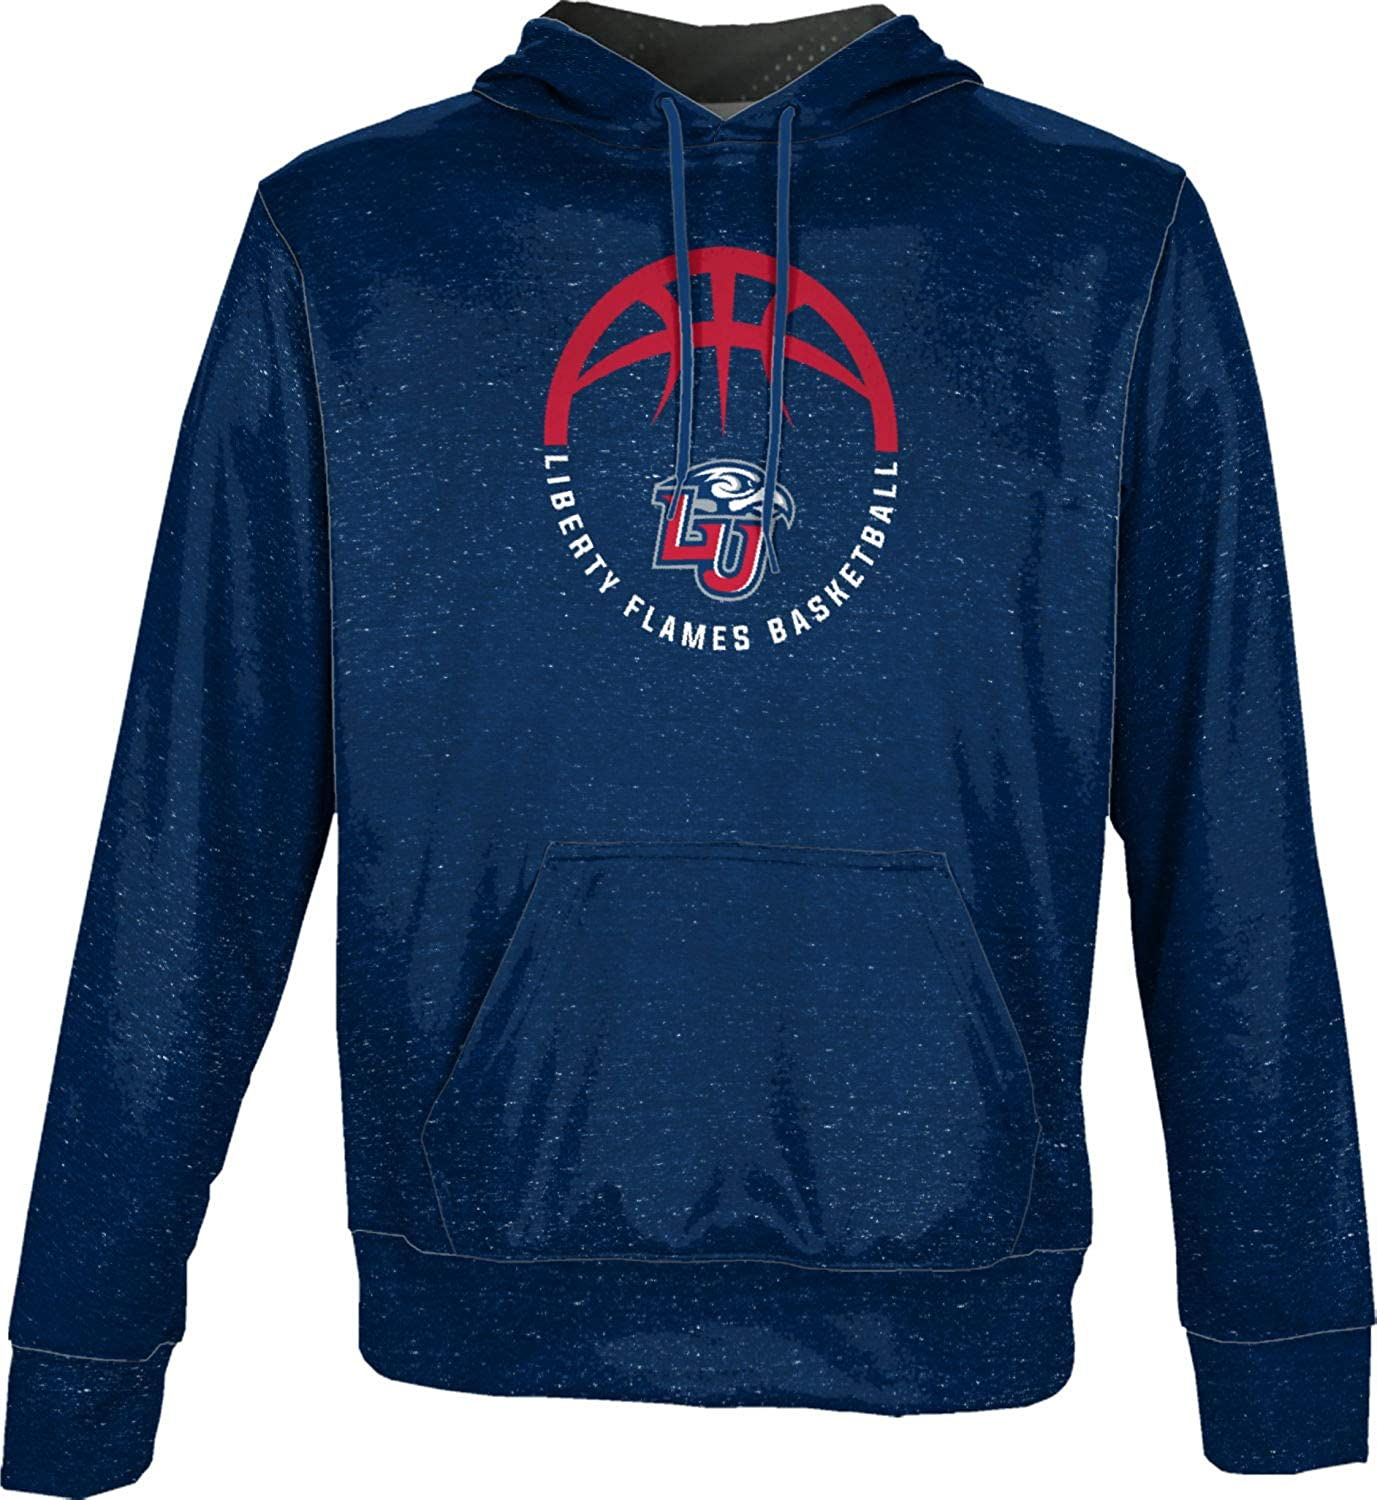 a0a2cd17 Amazon.com: ProSphere Liberty University Basketball Boys' Pullover Hoodie -  Heather Blue and Red: Clothing